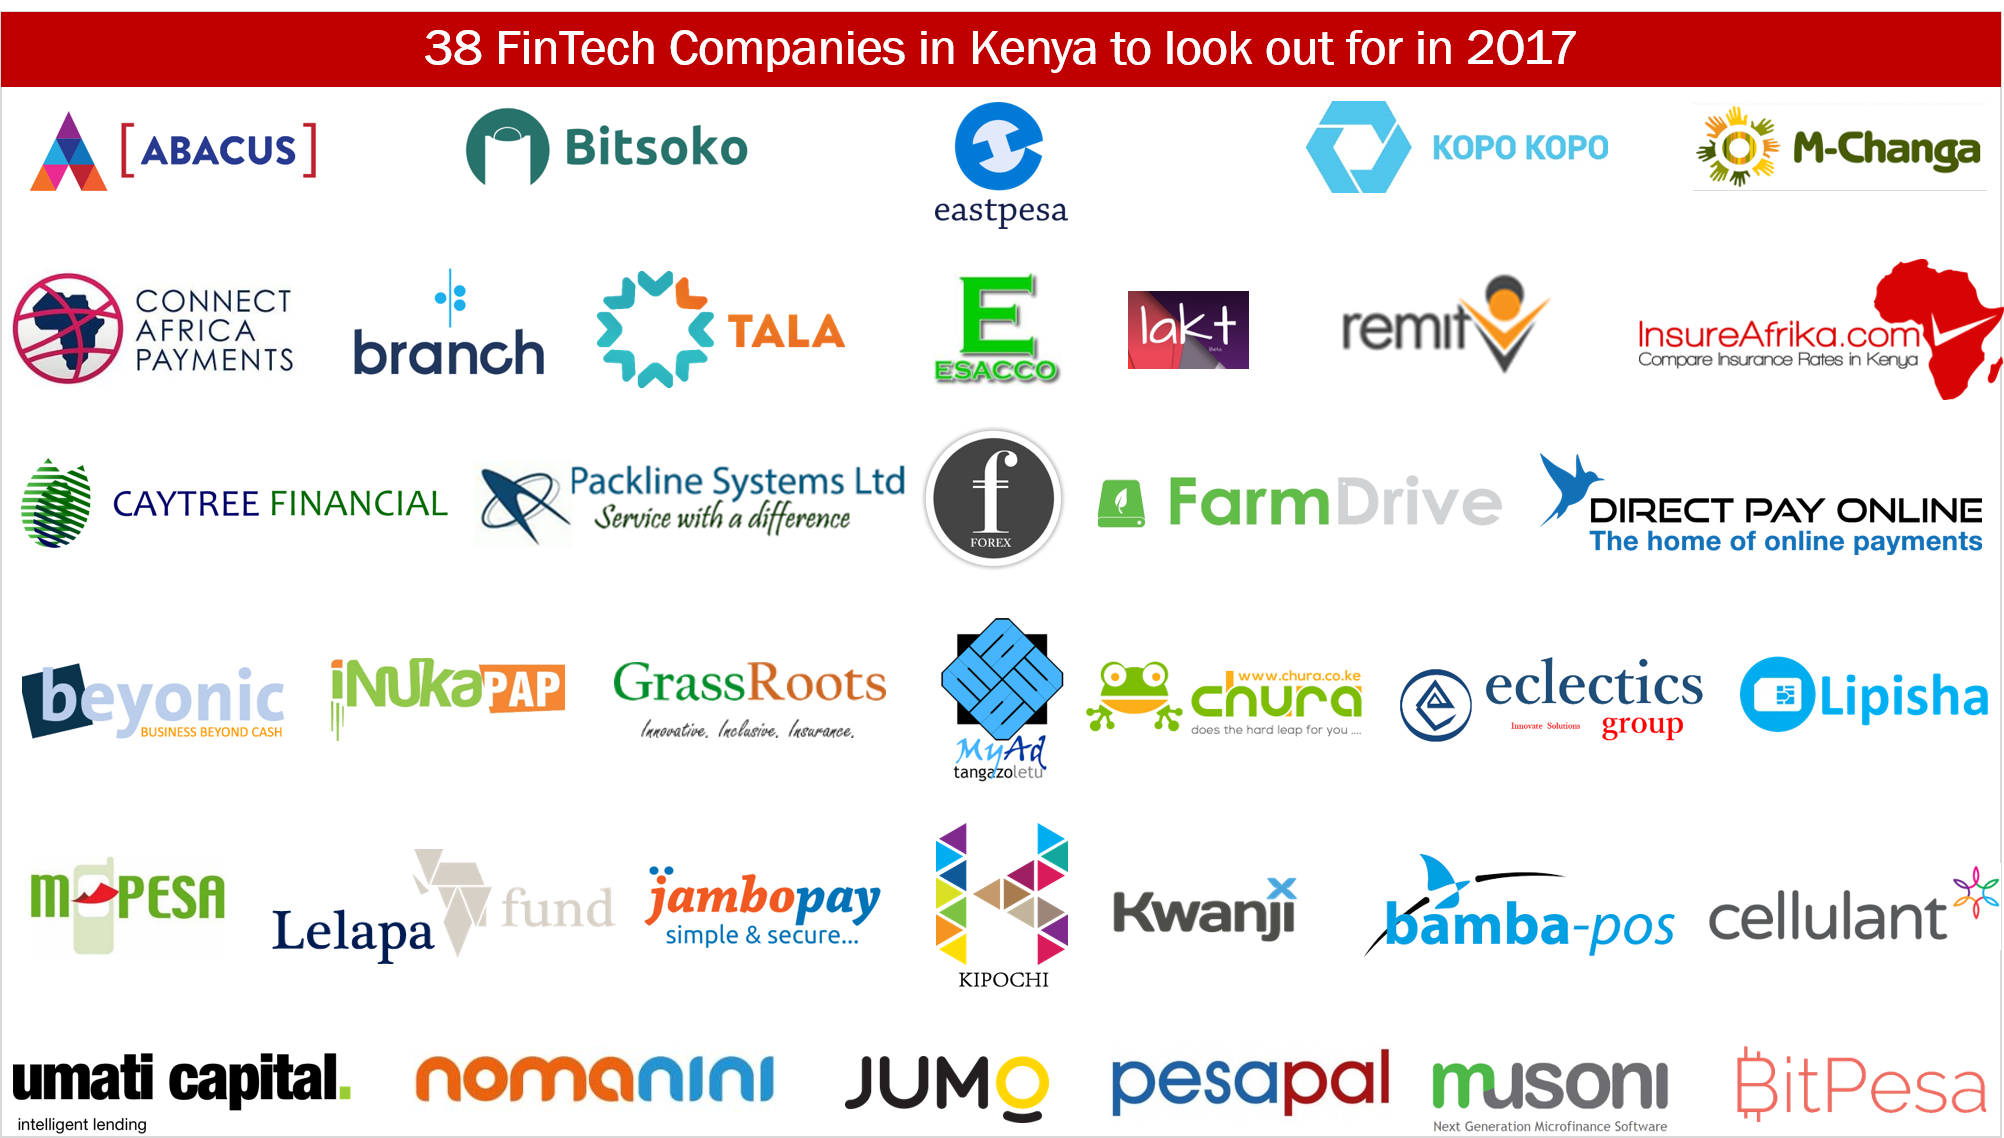 38 FinTech Companies in Kenya to Look out for in 2017